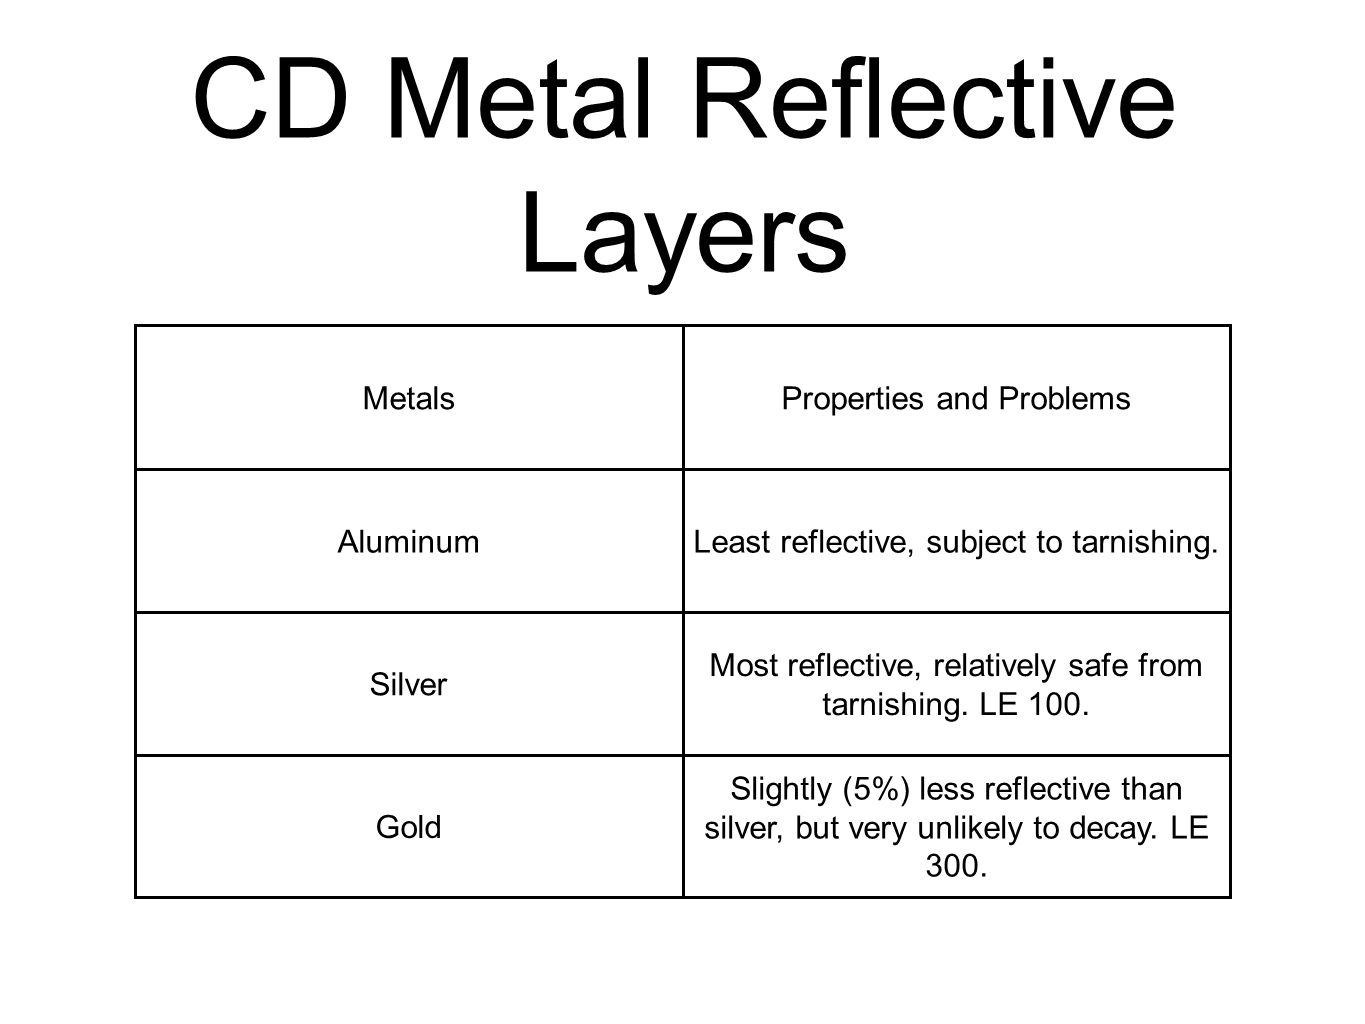 CD Metal Reflective Layers MetalsProperties and Problems AluminumLeast reflective, subject to tarnishing.